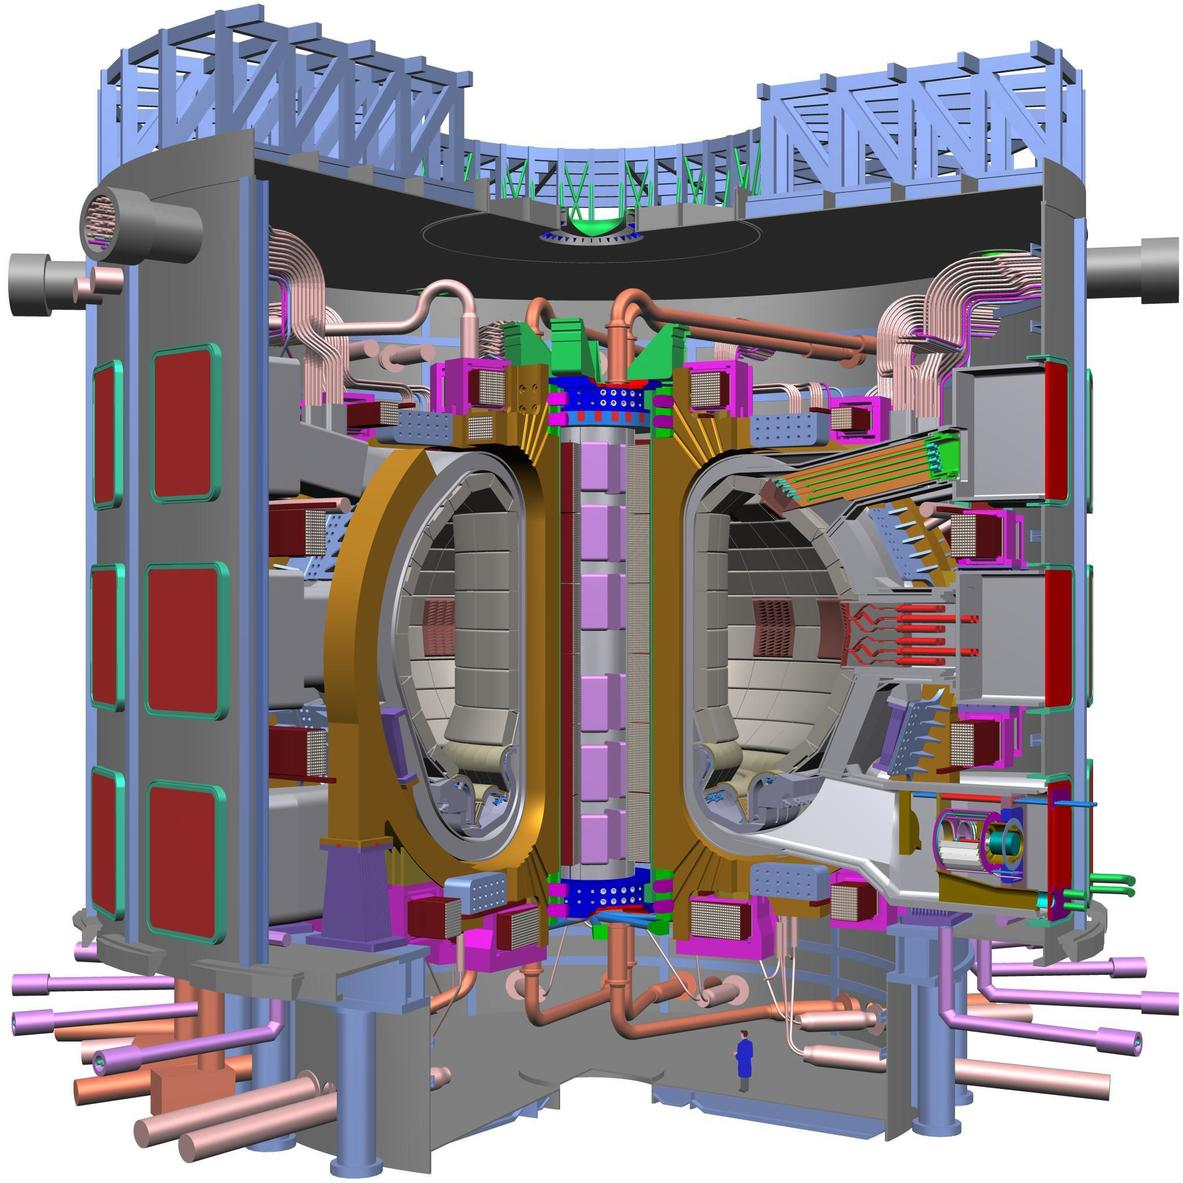 A look inside the ITER tokamak reactor. - Image Credit: ITER